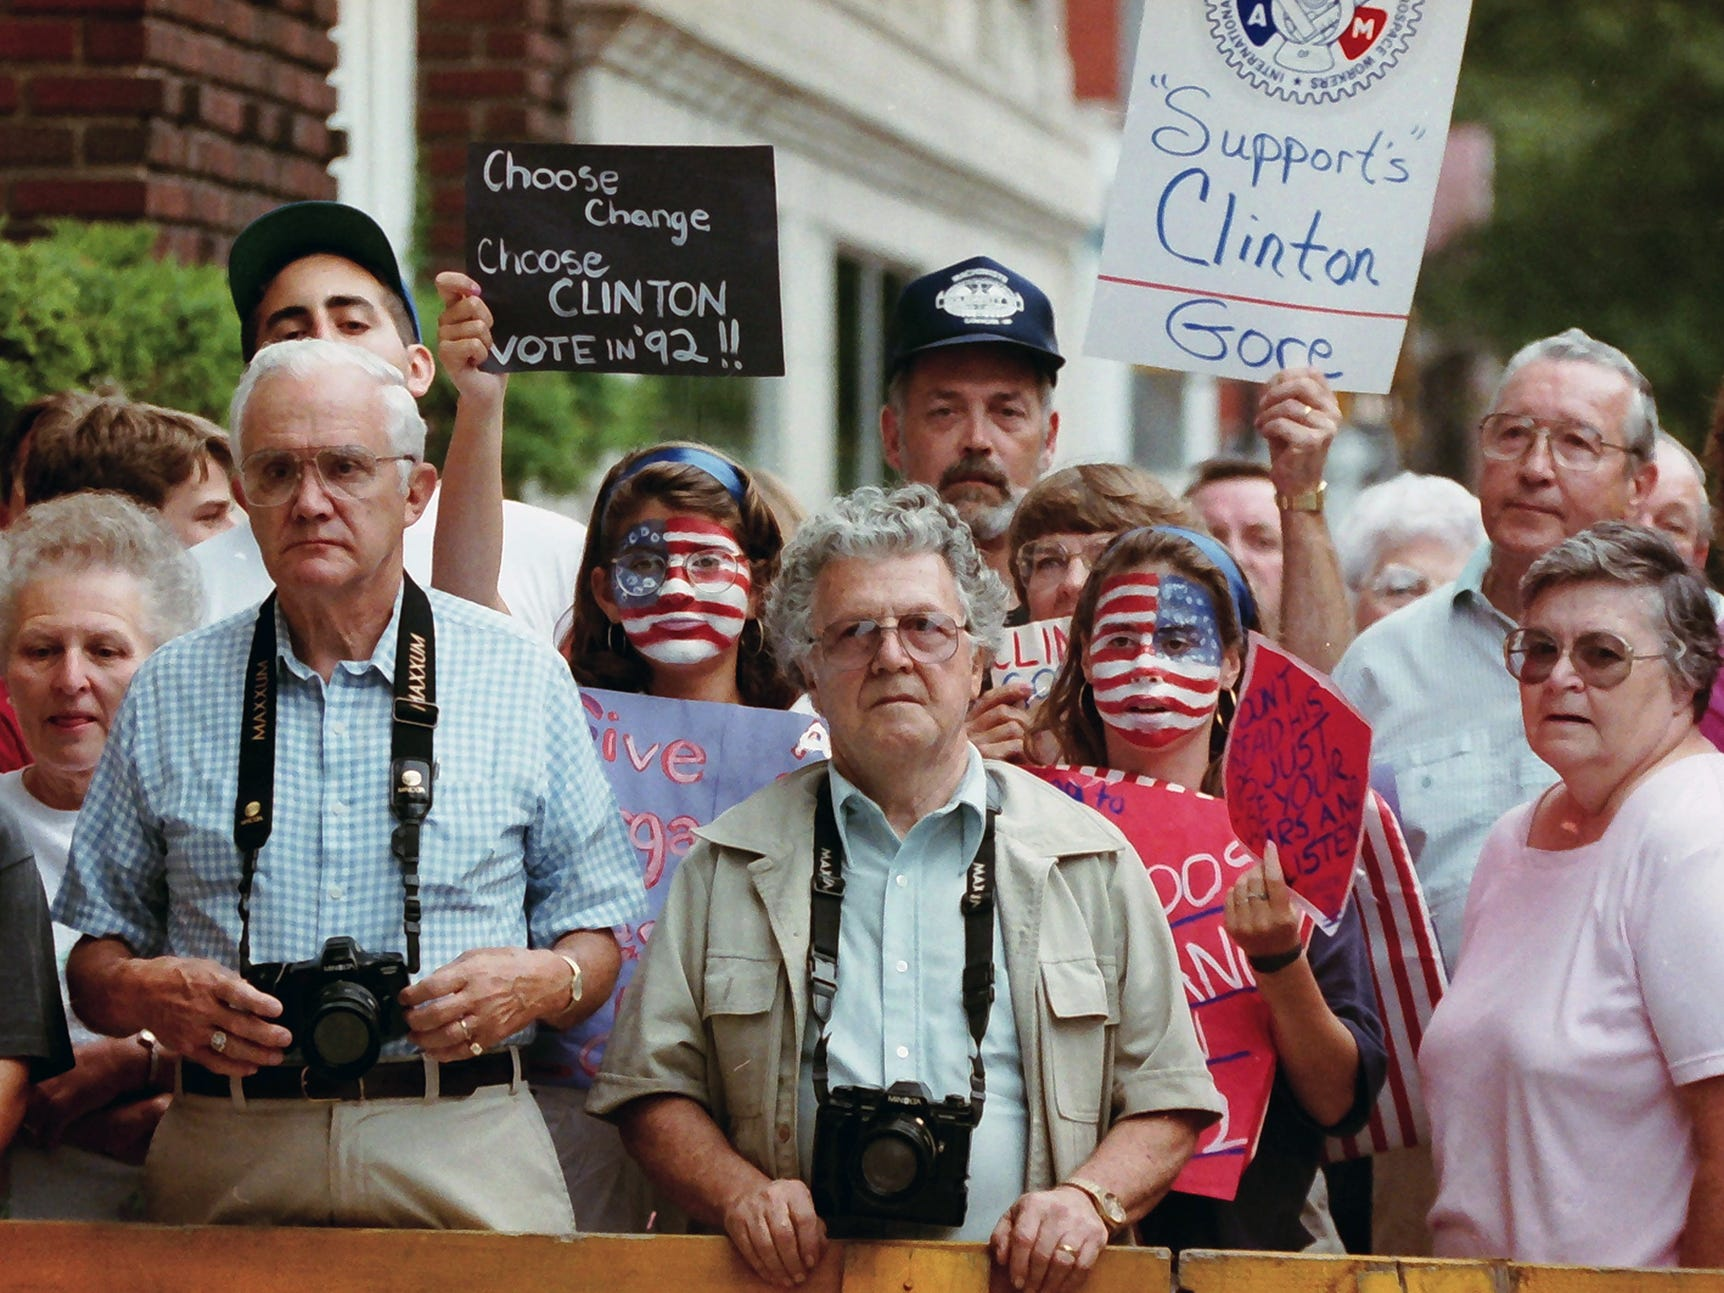 Clinton supporters wait for a glimpse of the visitors during a visit to York July 18, 1992. Hillary Clinton and Tipper Gore accompanied their husbands, Dem nominees Bill Clinton and Al Gore, on a 1,000-mile bus trip after winning their party's nod in July 1992.